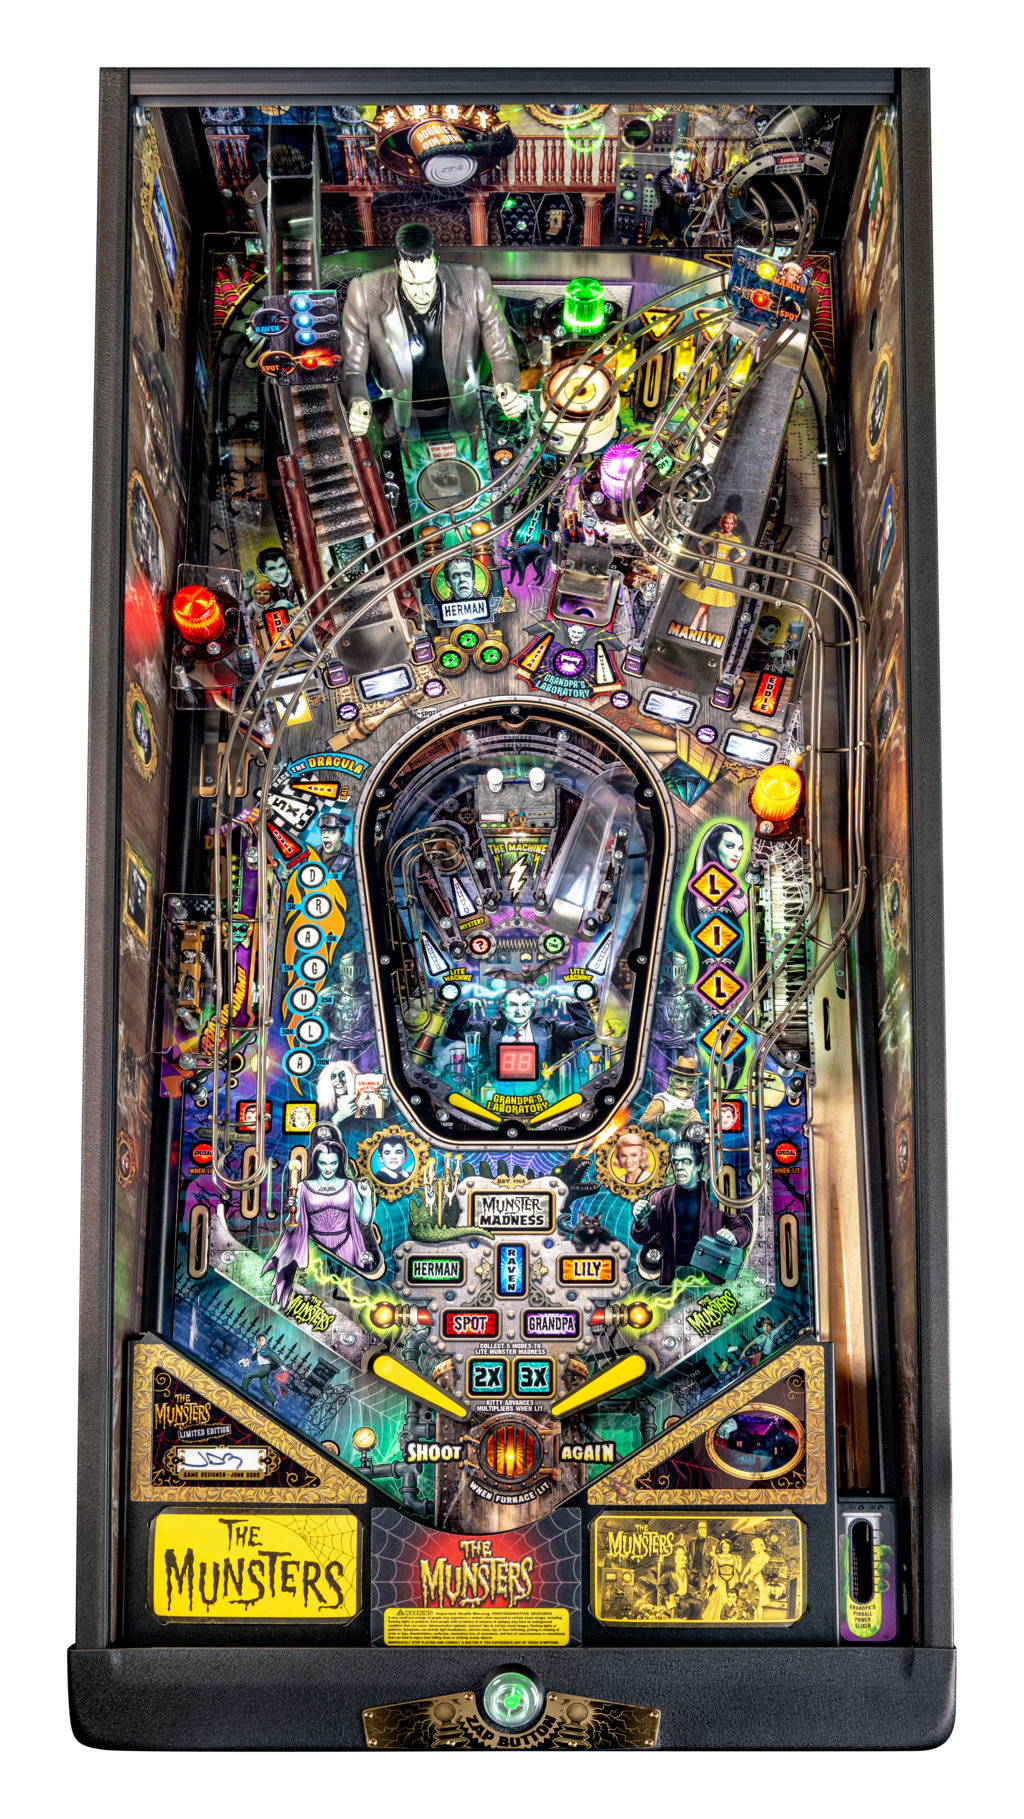 Munsters LE Playfield 01 mini